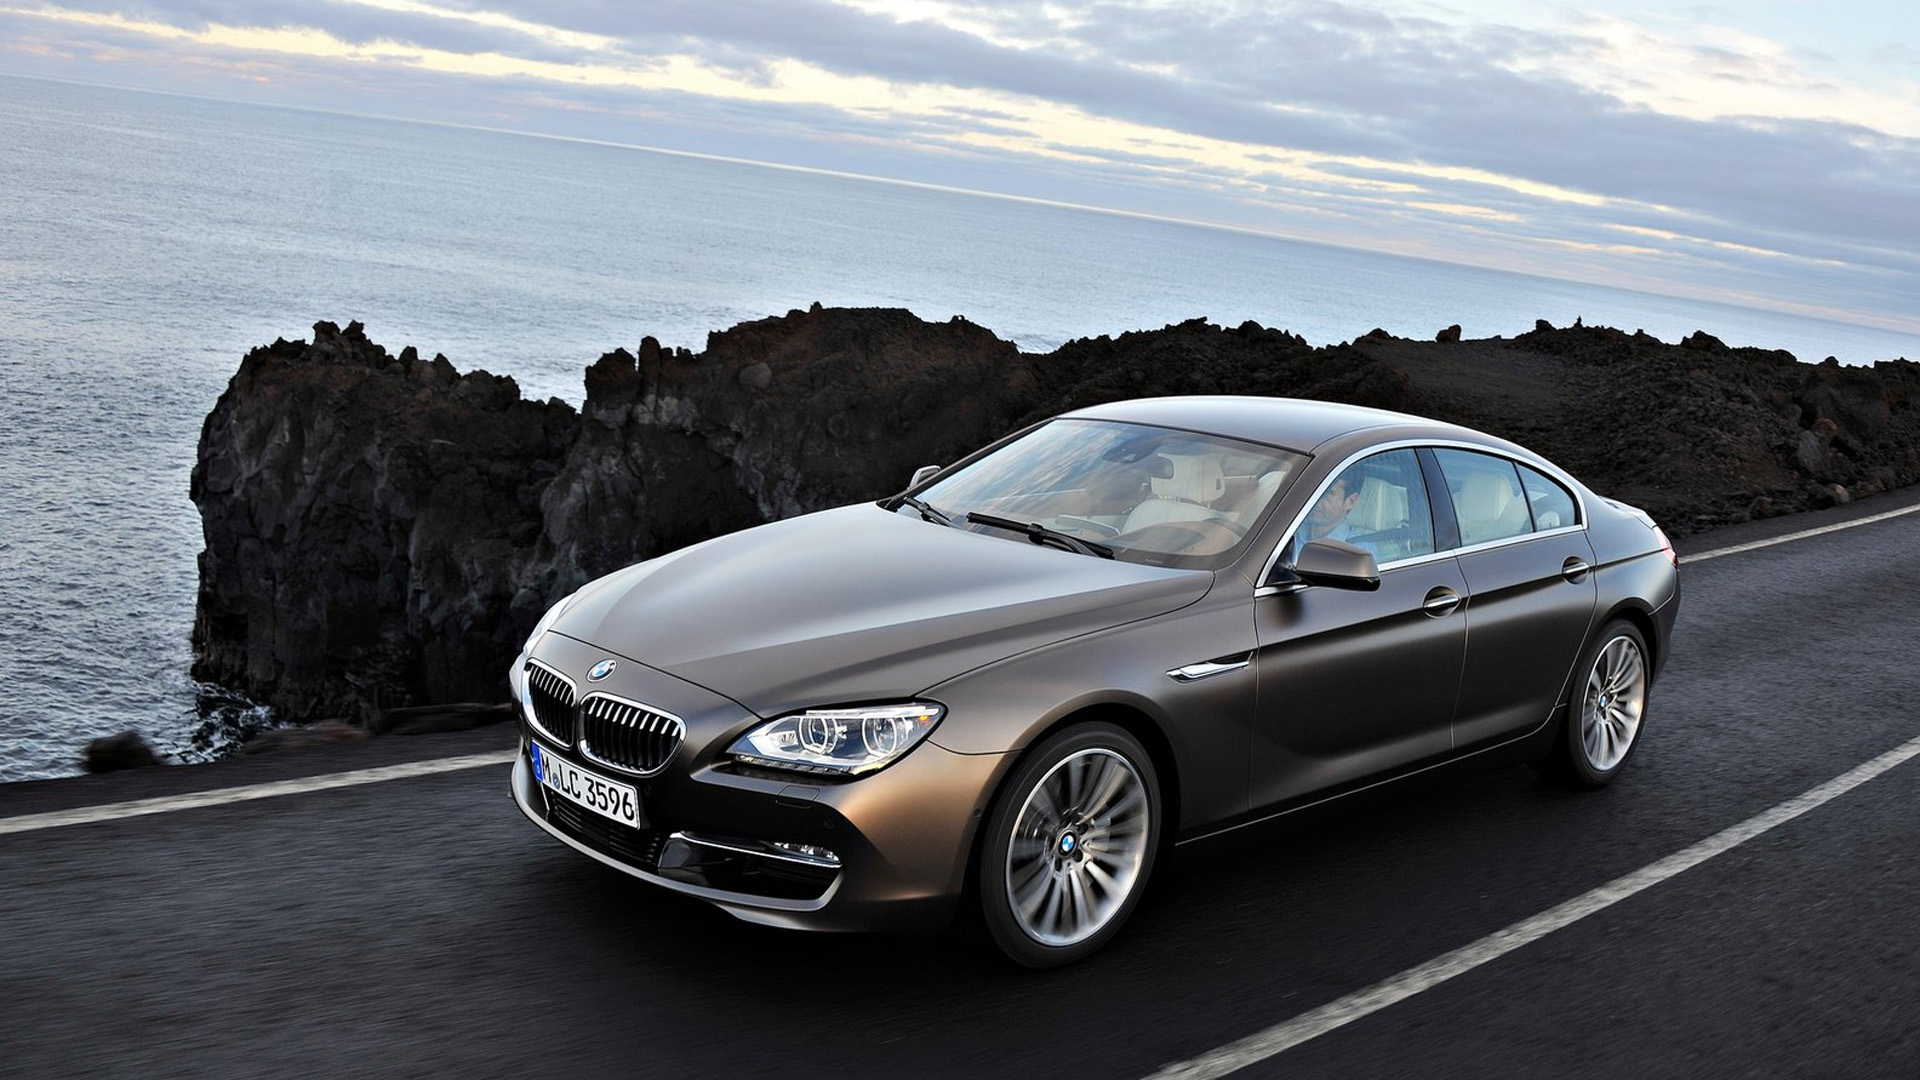 Luxury Bmw Cars 13 Widescreen Car Wallpaper